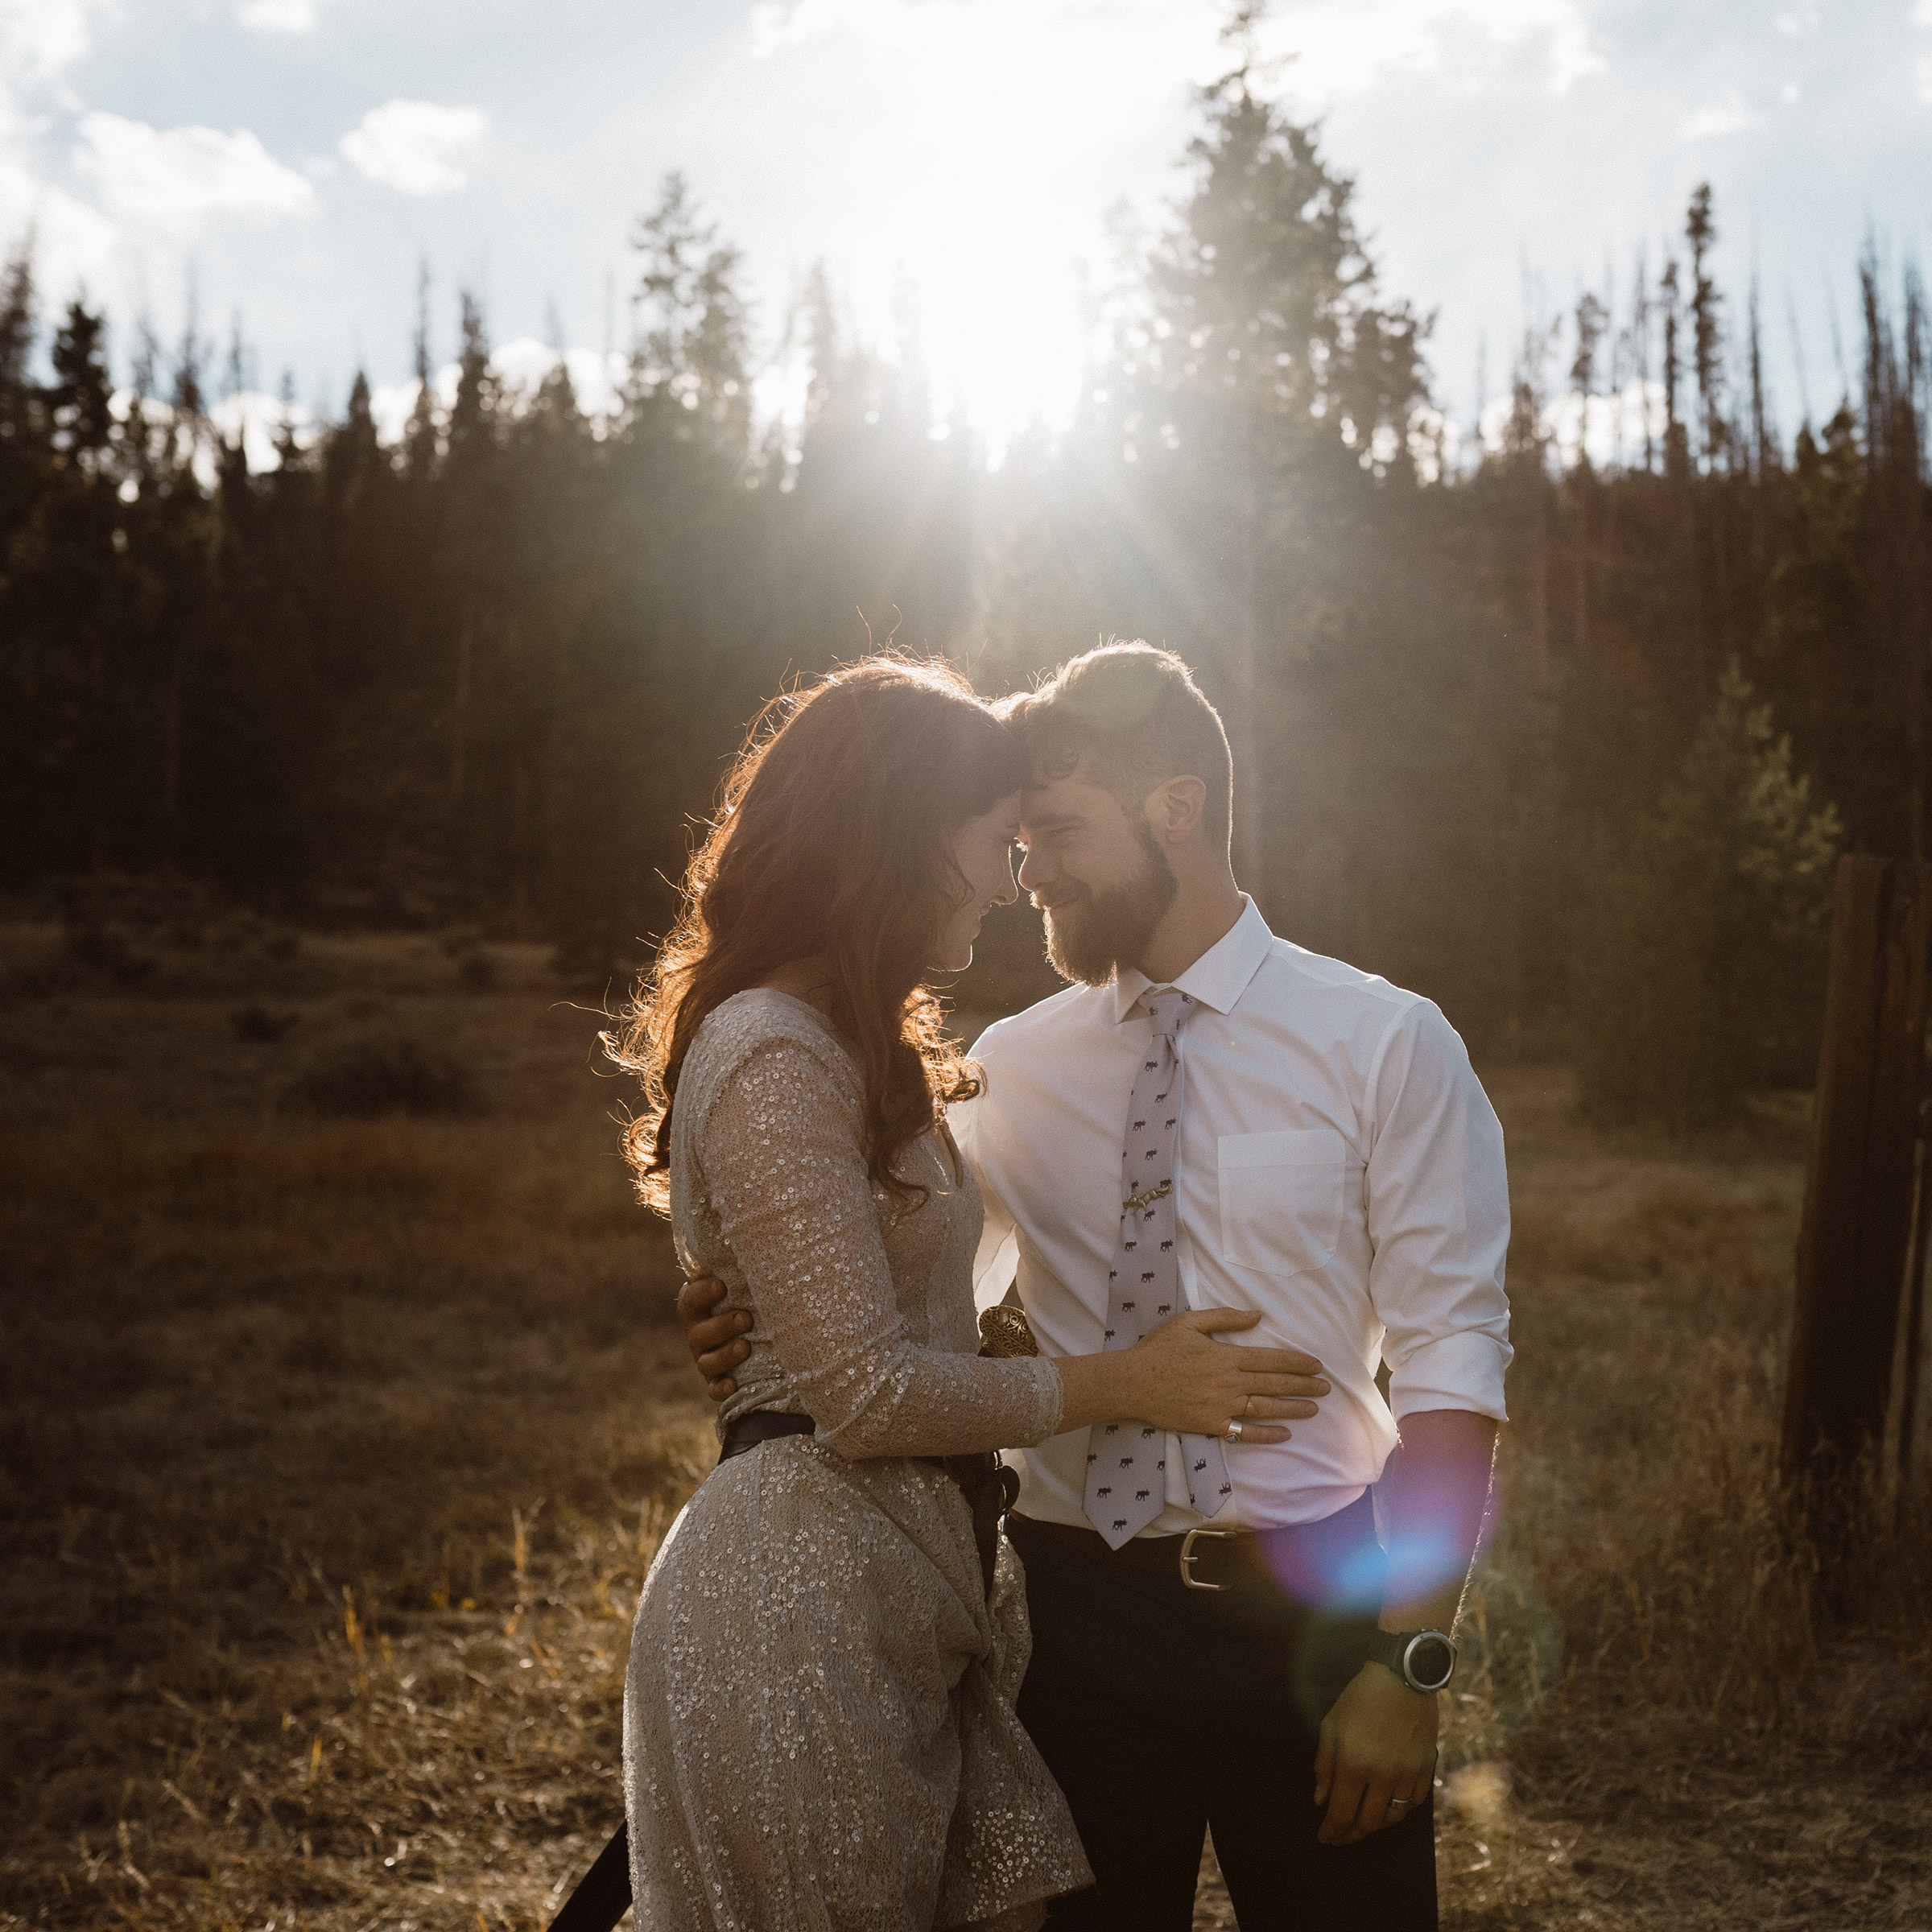 wedding-couple-holding-each-other-in-sun-light-grand-lake-colorado-raelyn-ramey-photography-654.jpg